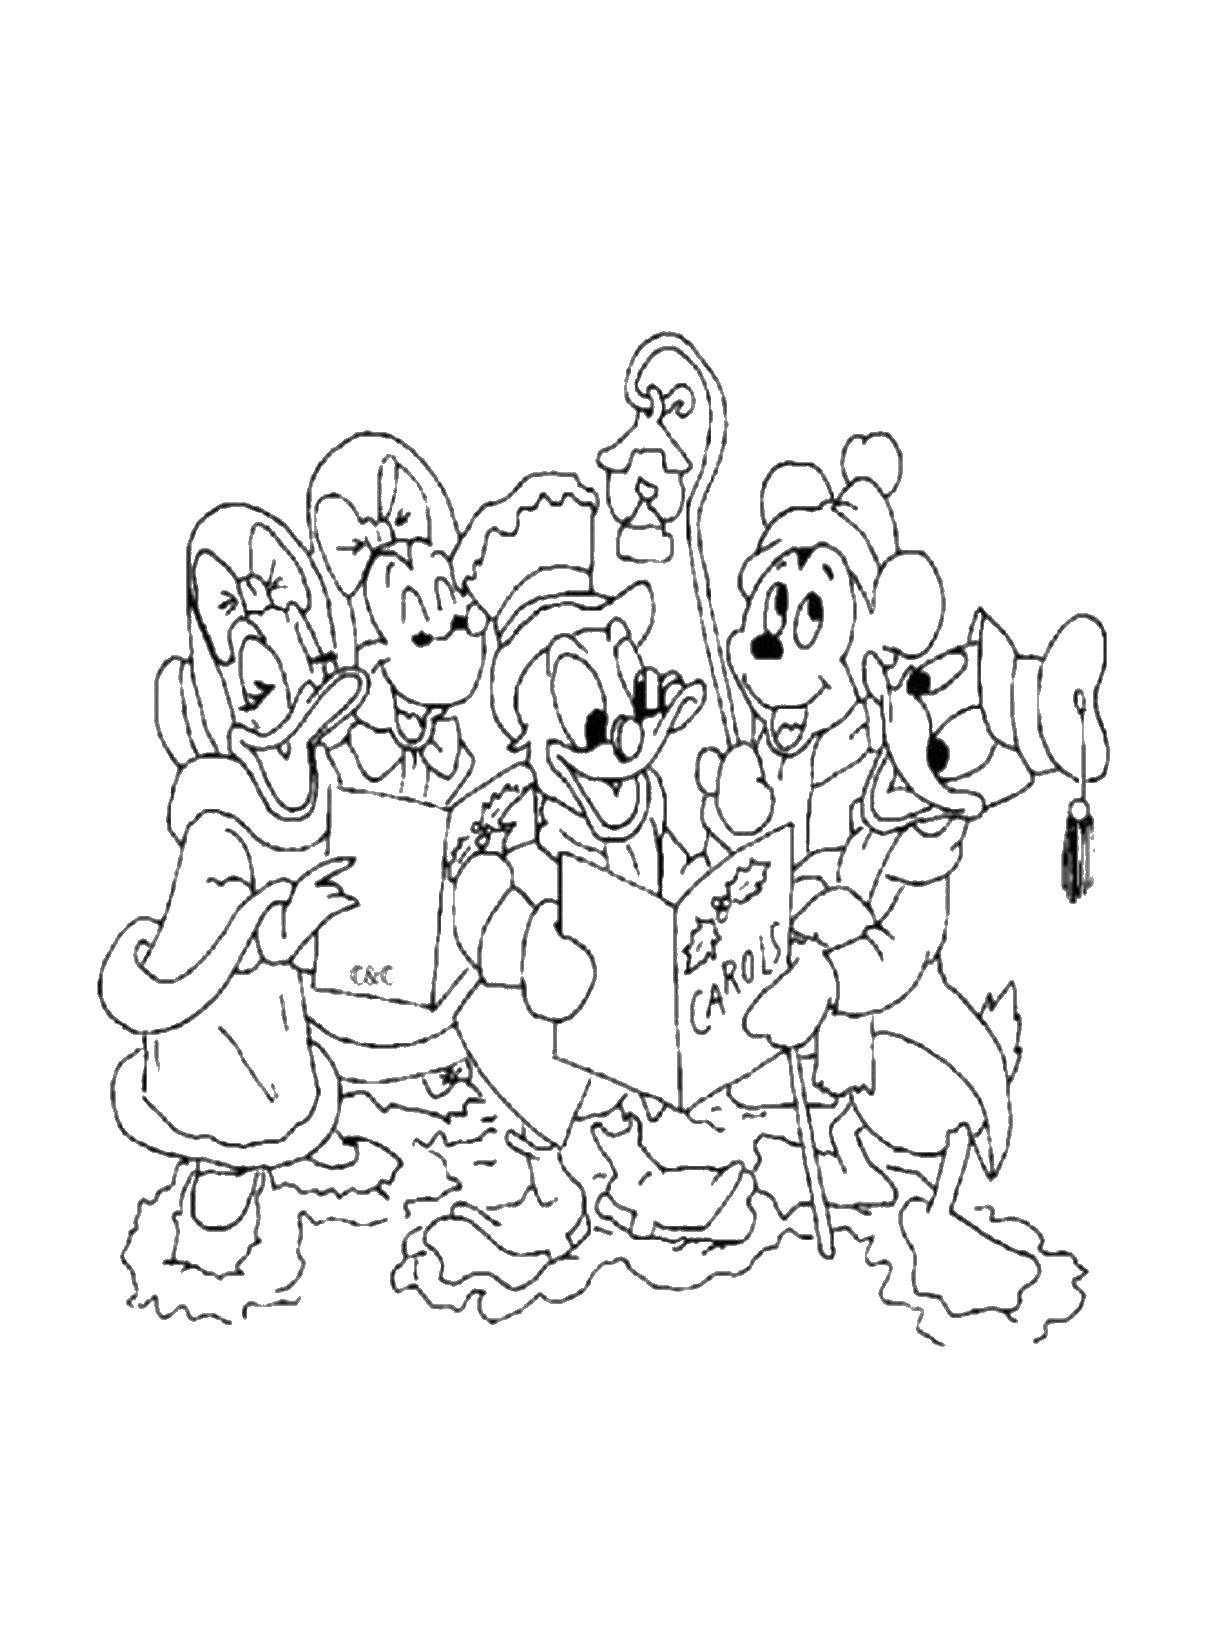 Coloring sheet Christmas Download Cartoon character.  Print ,coloring,